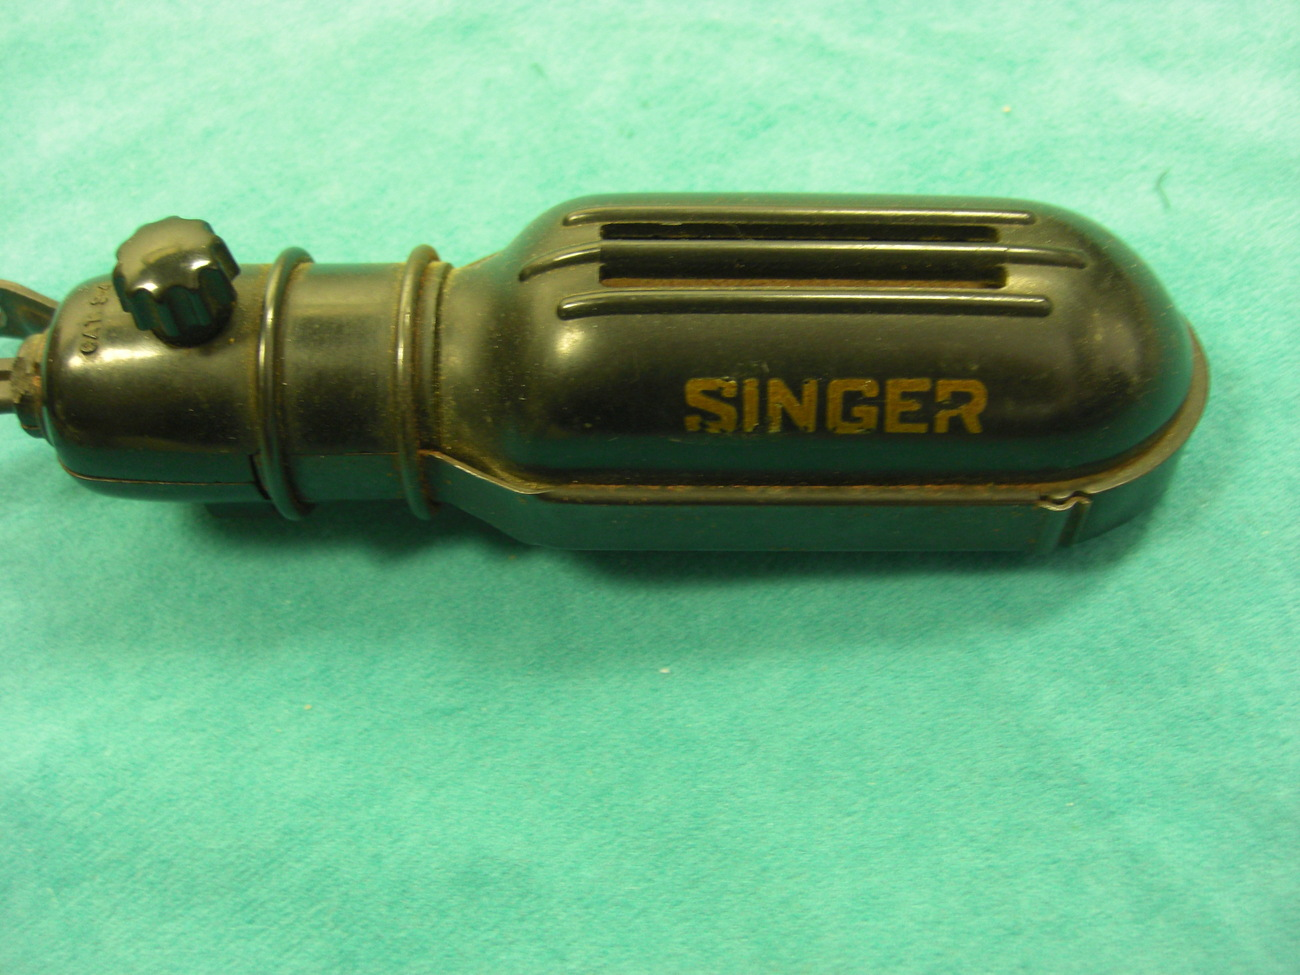 Singer Sewing Machine Light Fixture with Bracket